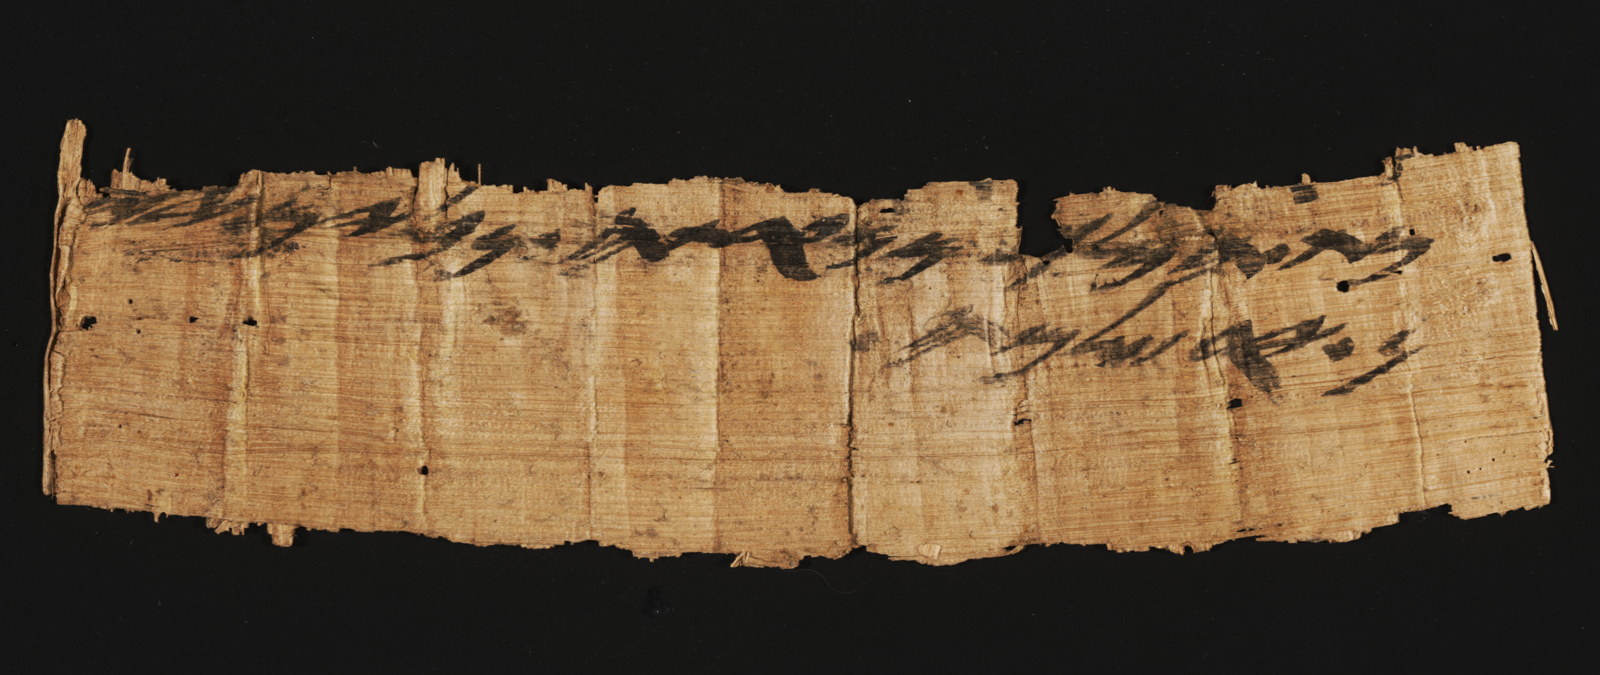 The rare document from the time of the First Temple. Photo by Shai Halevi, courtesy of the Israel Antiquities Authority.